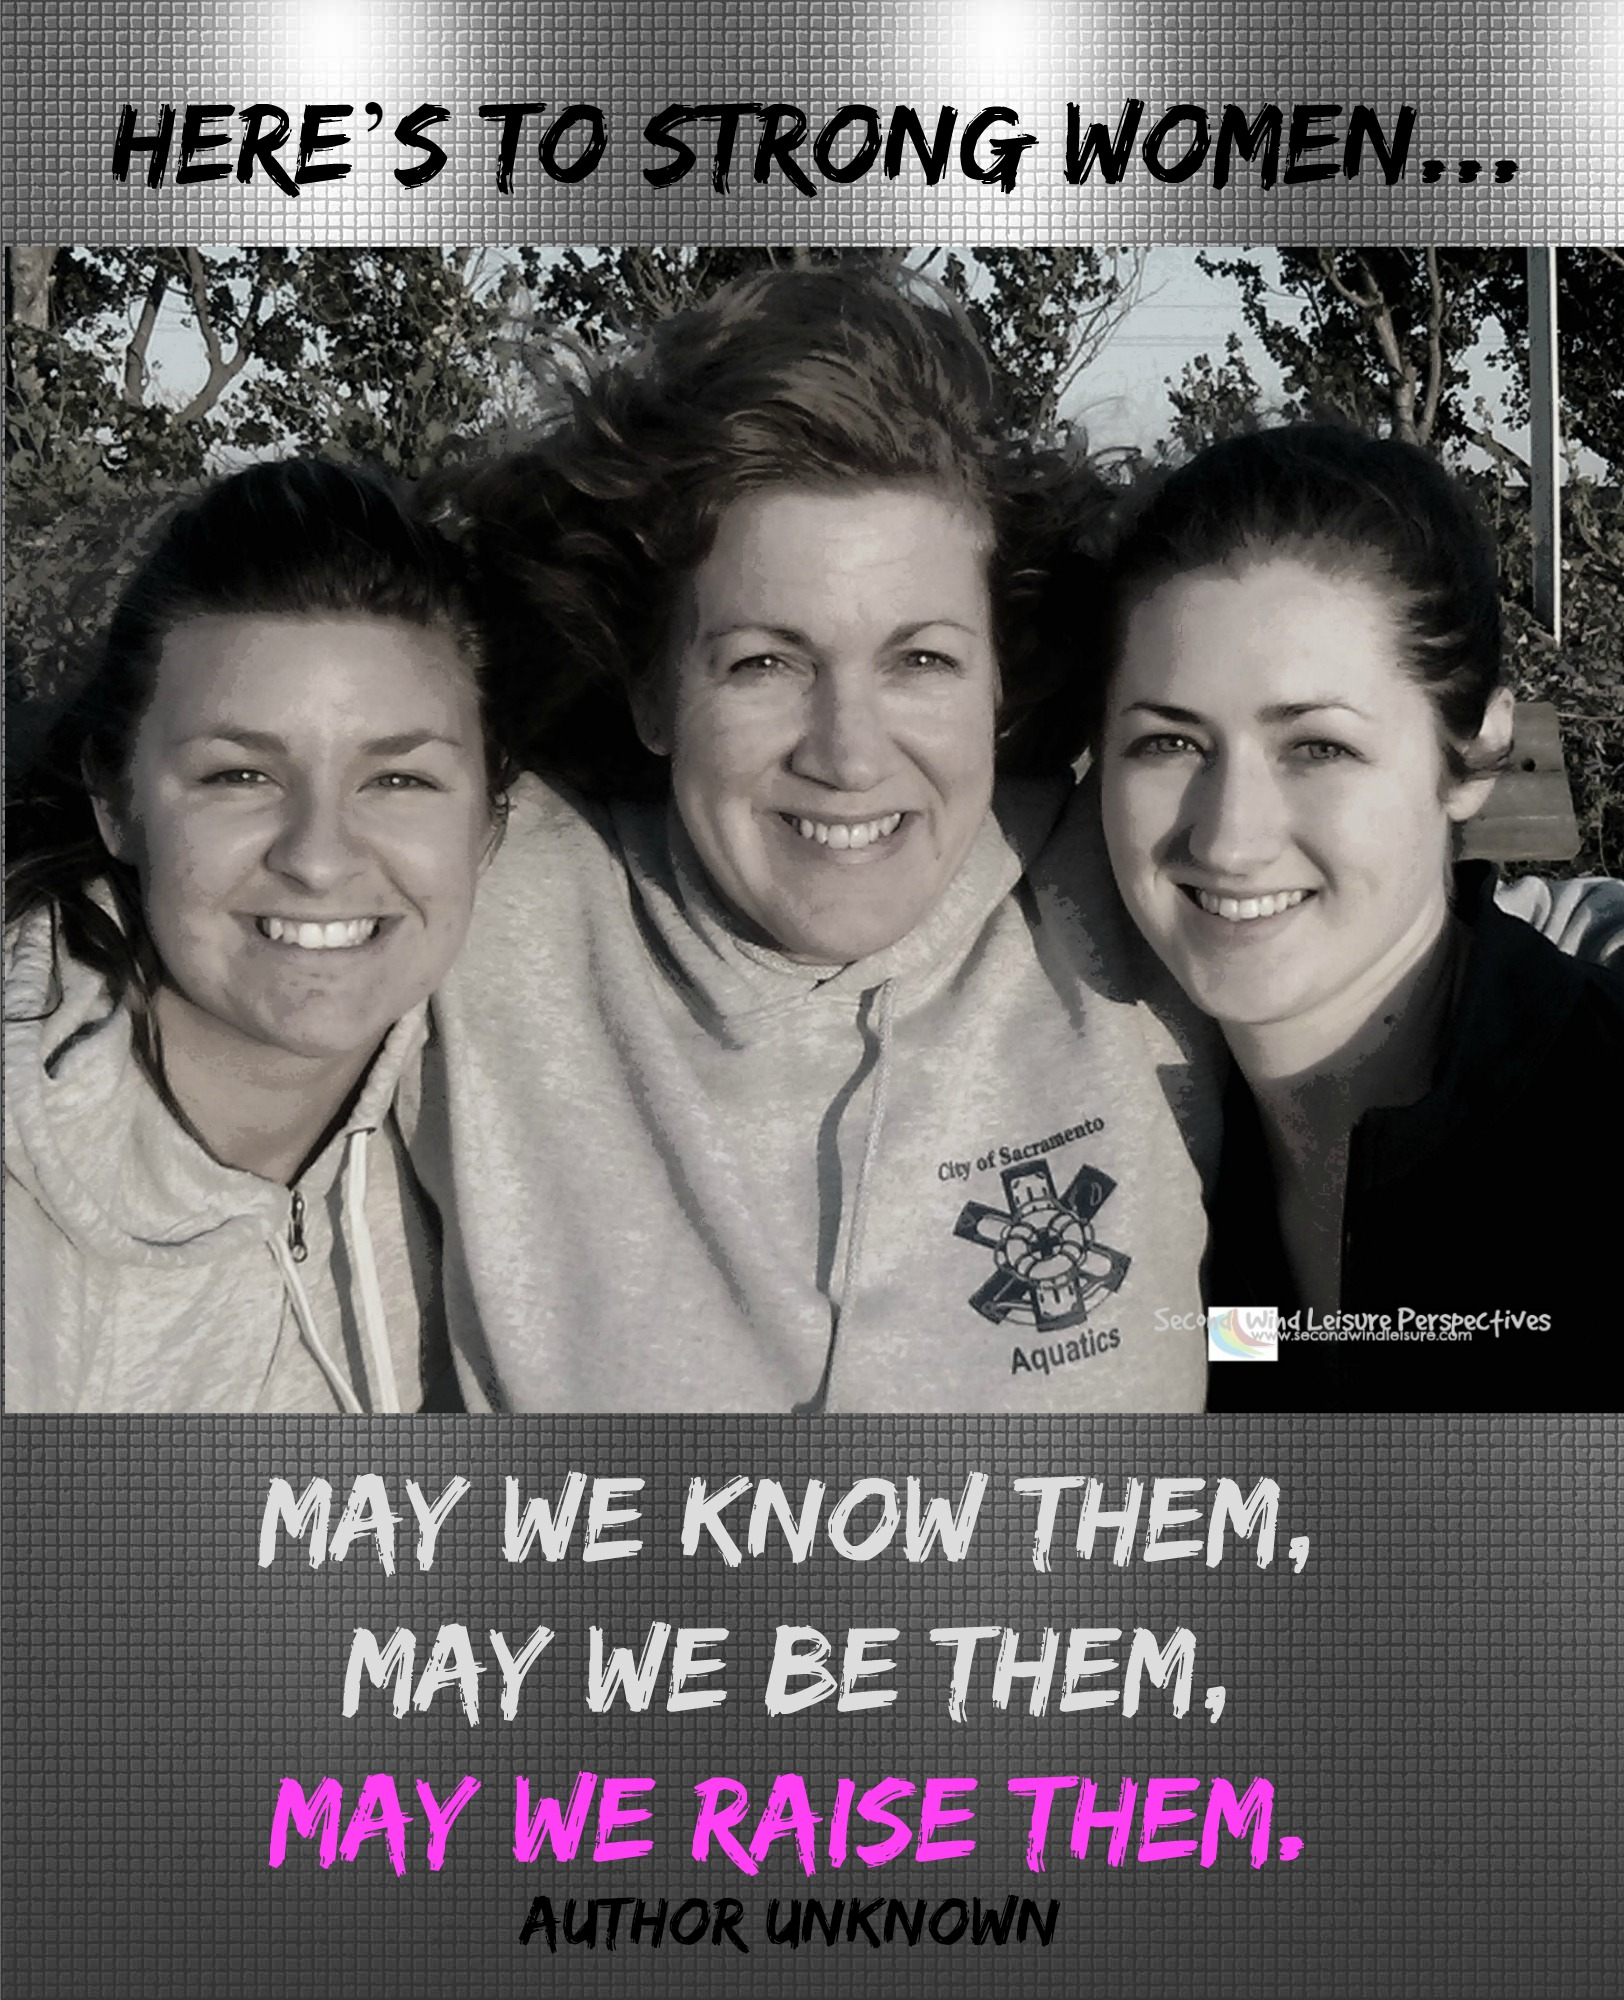 May we know them, may we be them, may we raise them.